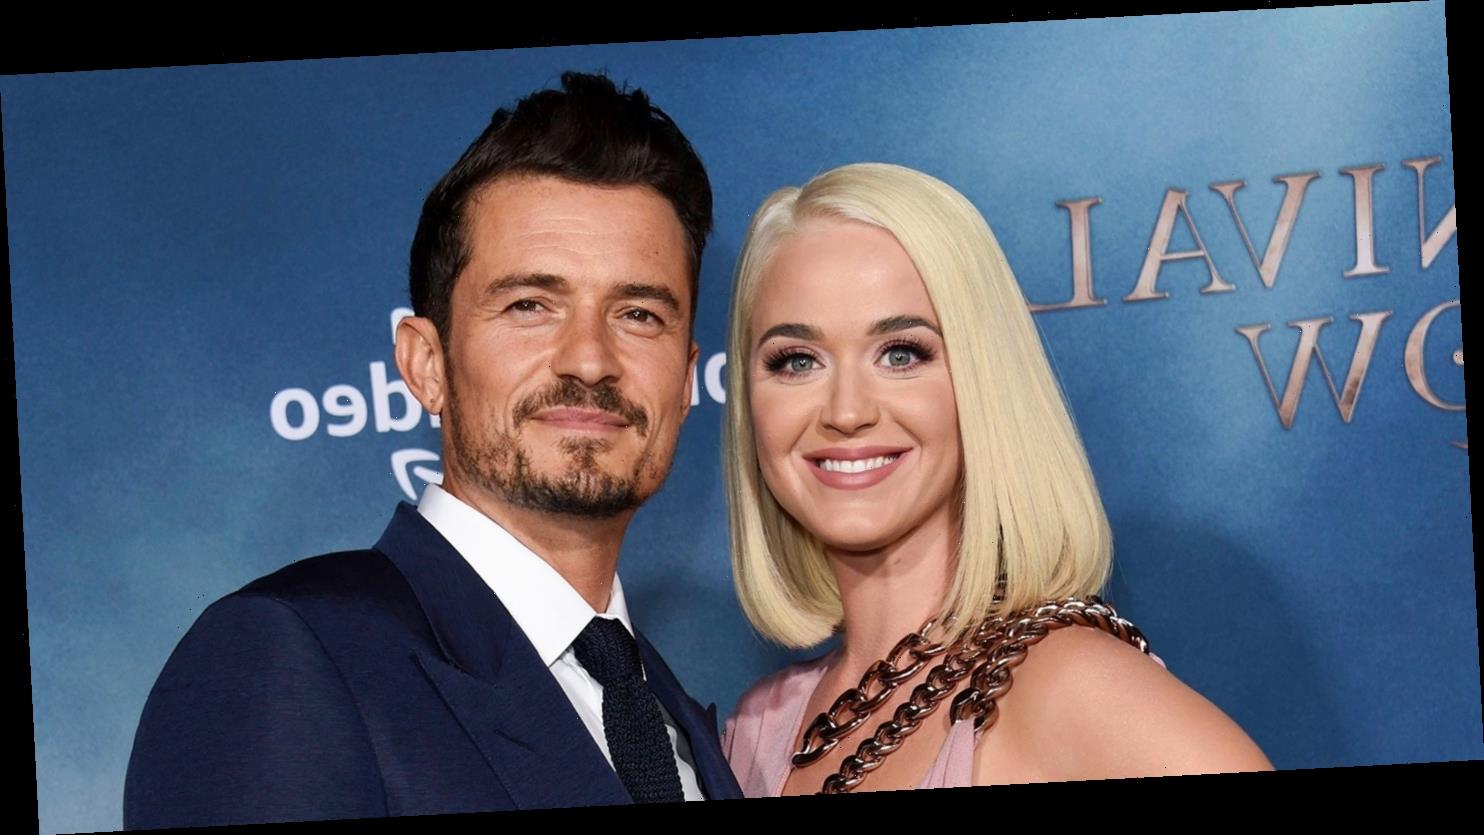 Katy Perry and Orlando Bloom Are Planning a December Wedding